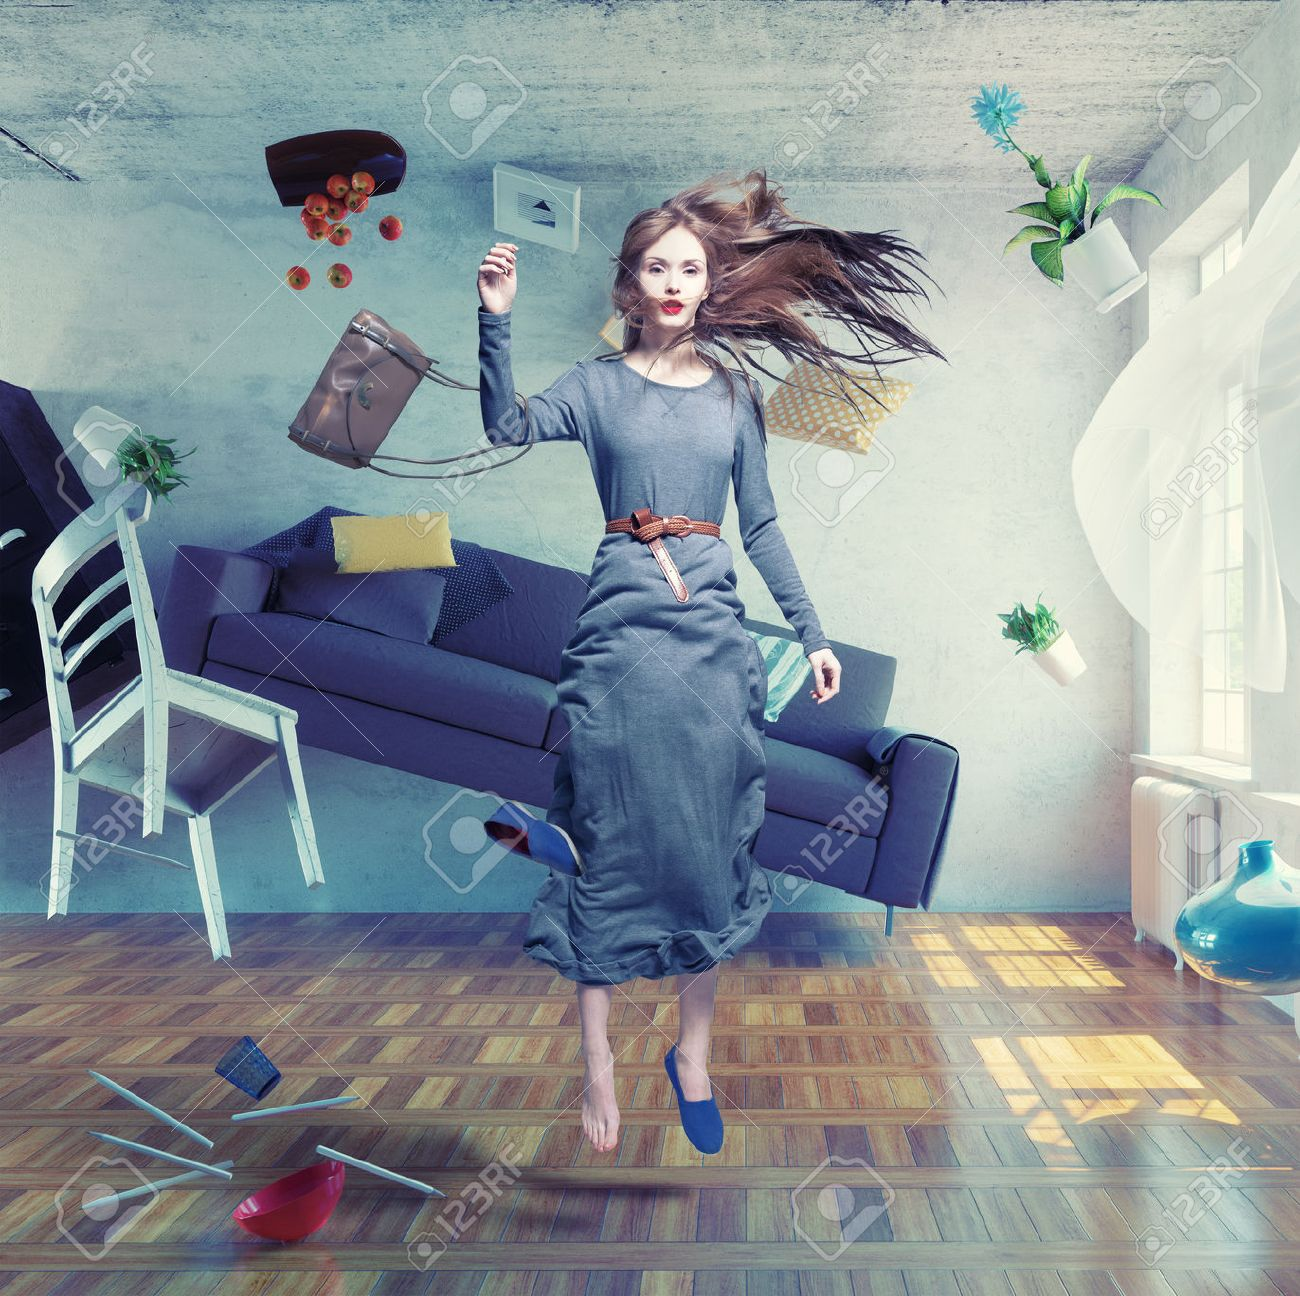 young beautiful lady fly in zero gravity room. Photo combination creative concept Standard-Bild - 43295105